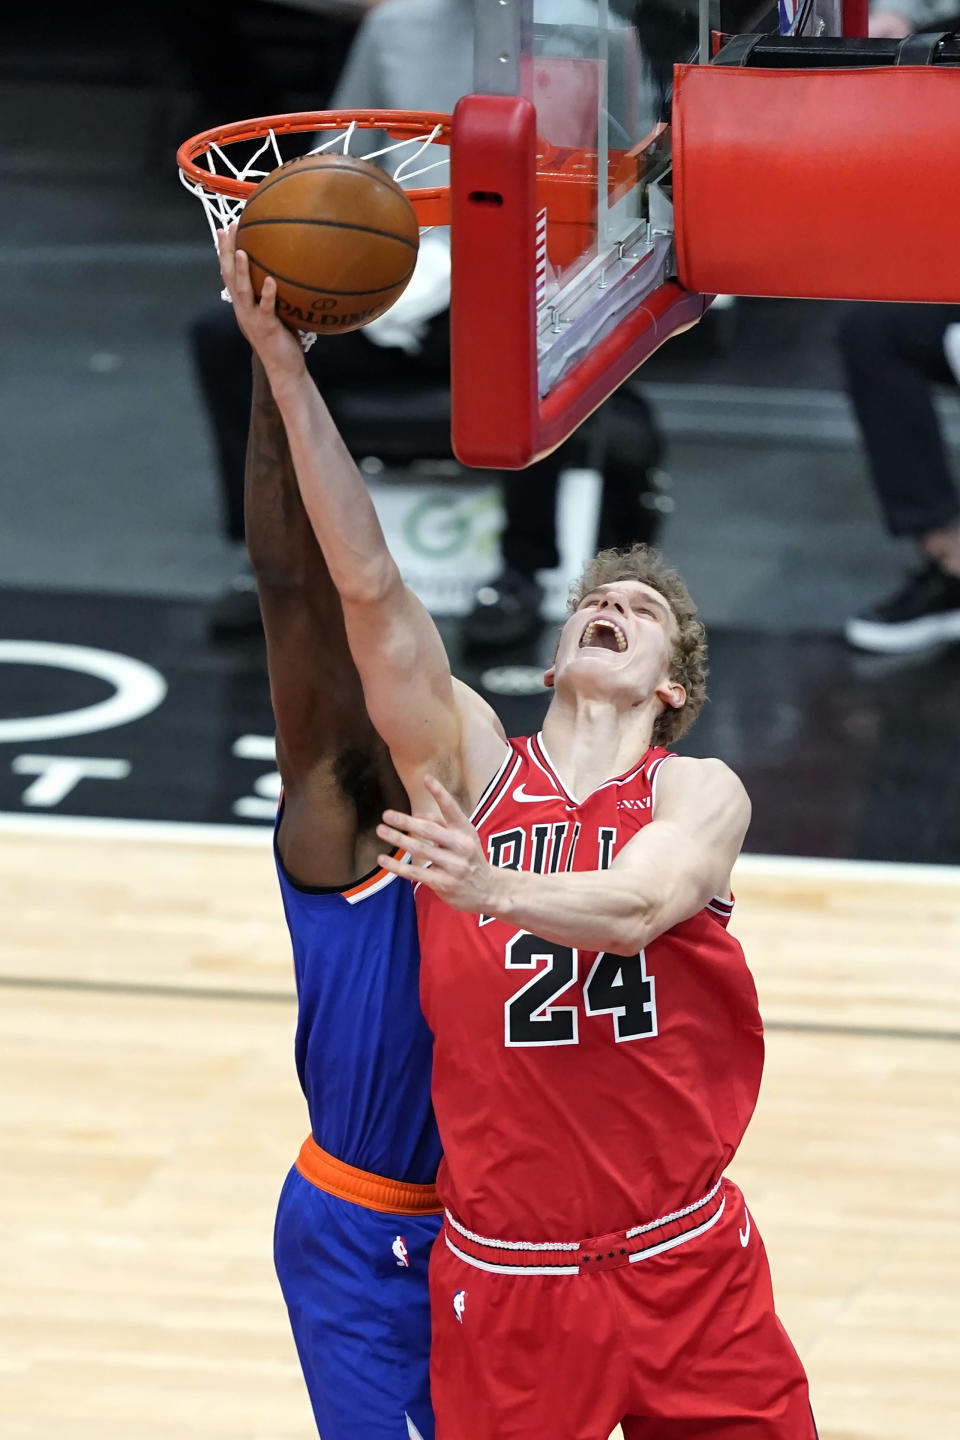 Chicago Bulls' Lauri Markkanen (24) scores on a reverse layup past New York Knicks' Julius Randle during the first half of an NBA basketball game Monday, Feb. 1, 2021, in Chicago. (AP Photo/Charles Rex Arbogast)